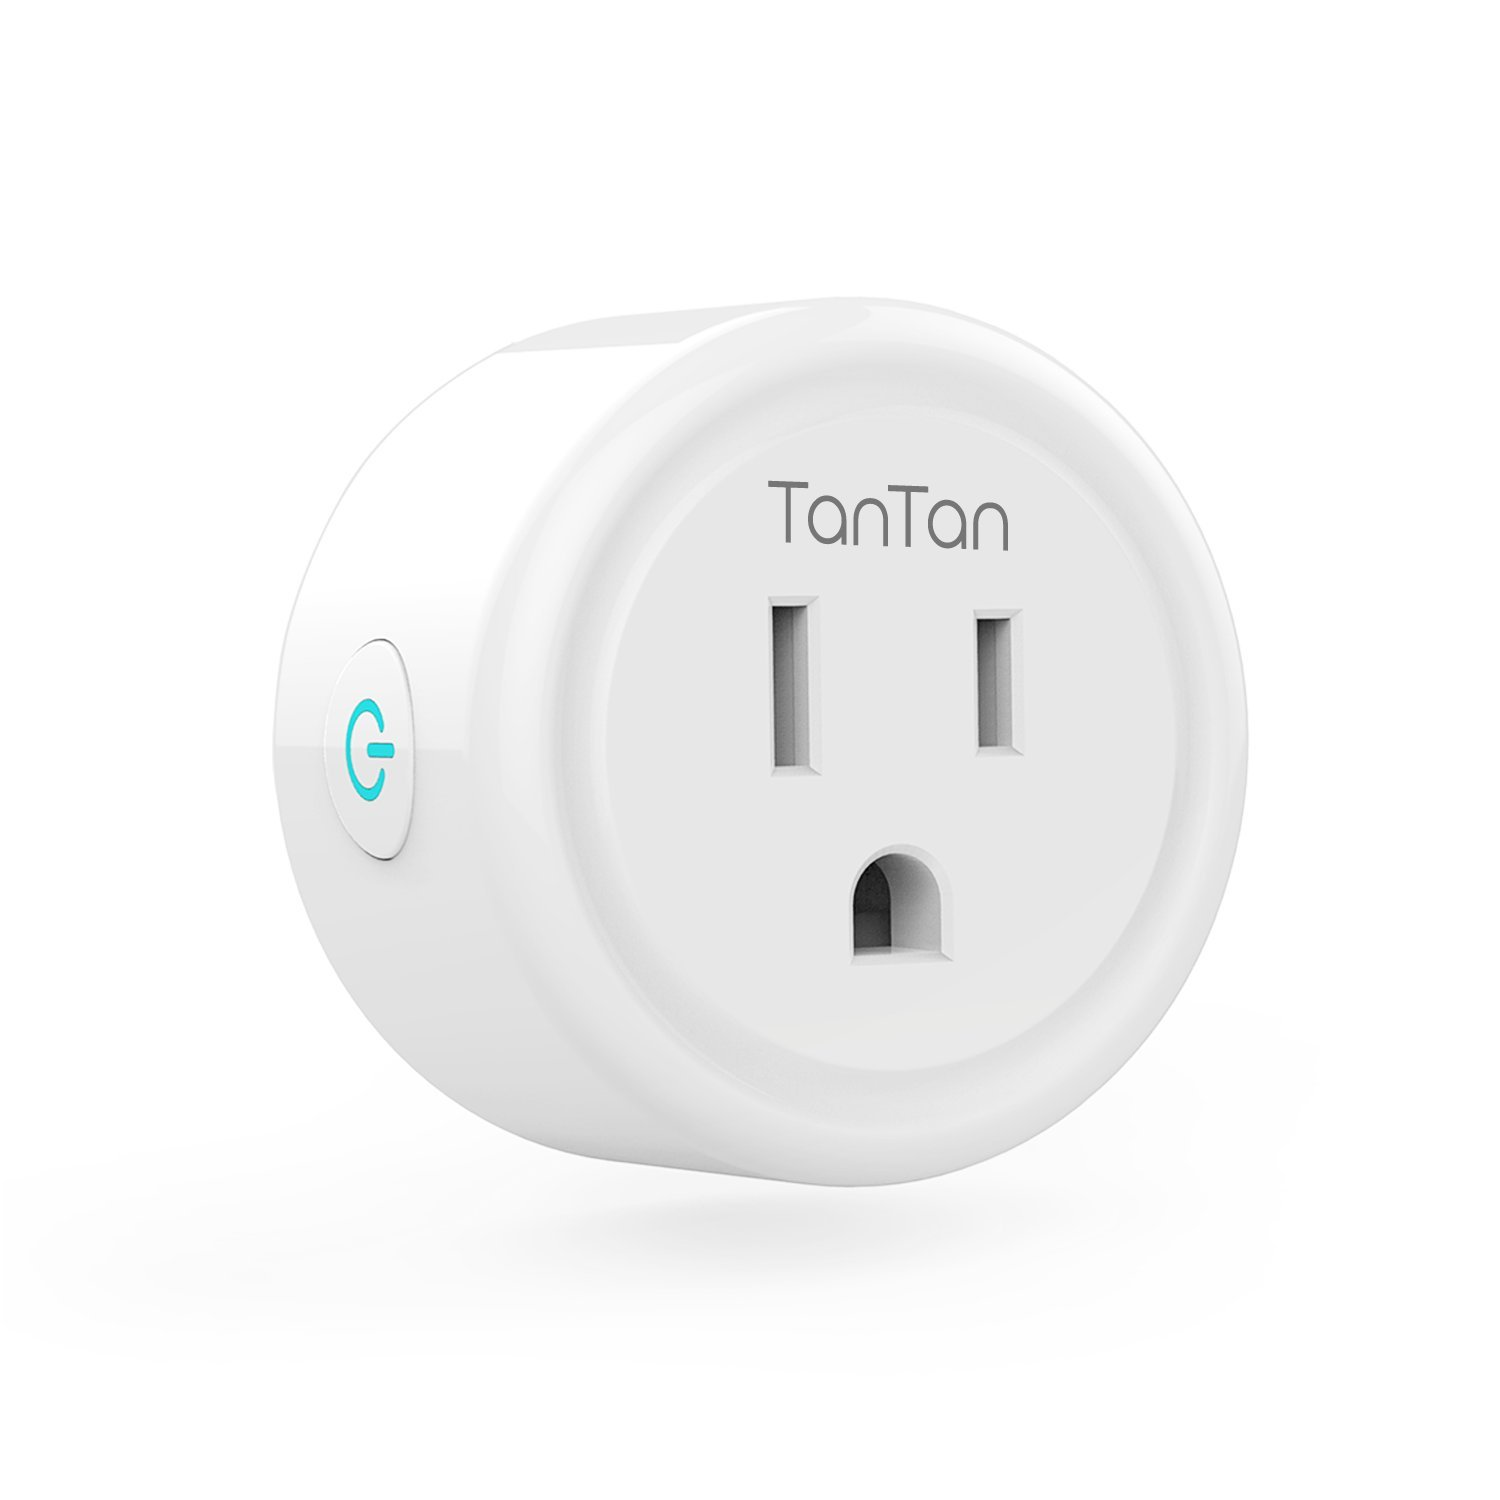 Smart Plug TanTan Wi-Fi Wireless Mini Socket Outlet Works with Amazon Alexa and Google Home & IFTTT, No Hub Required, Remote Control Your Devices from Anywhere, ETL Listed [Upgraded Version] dhdl cdy-005